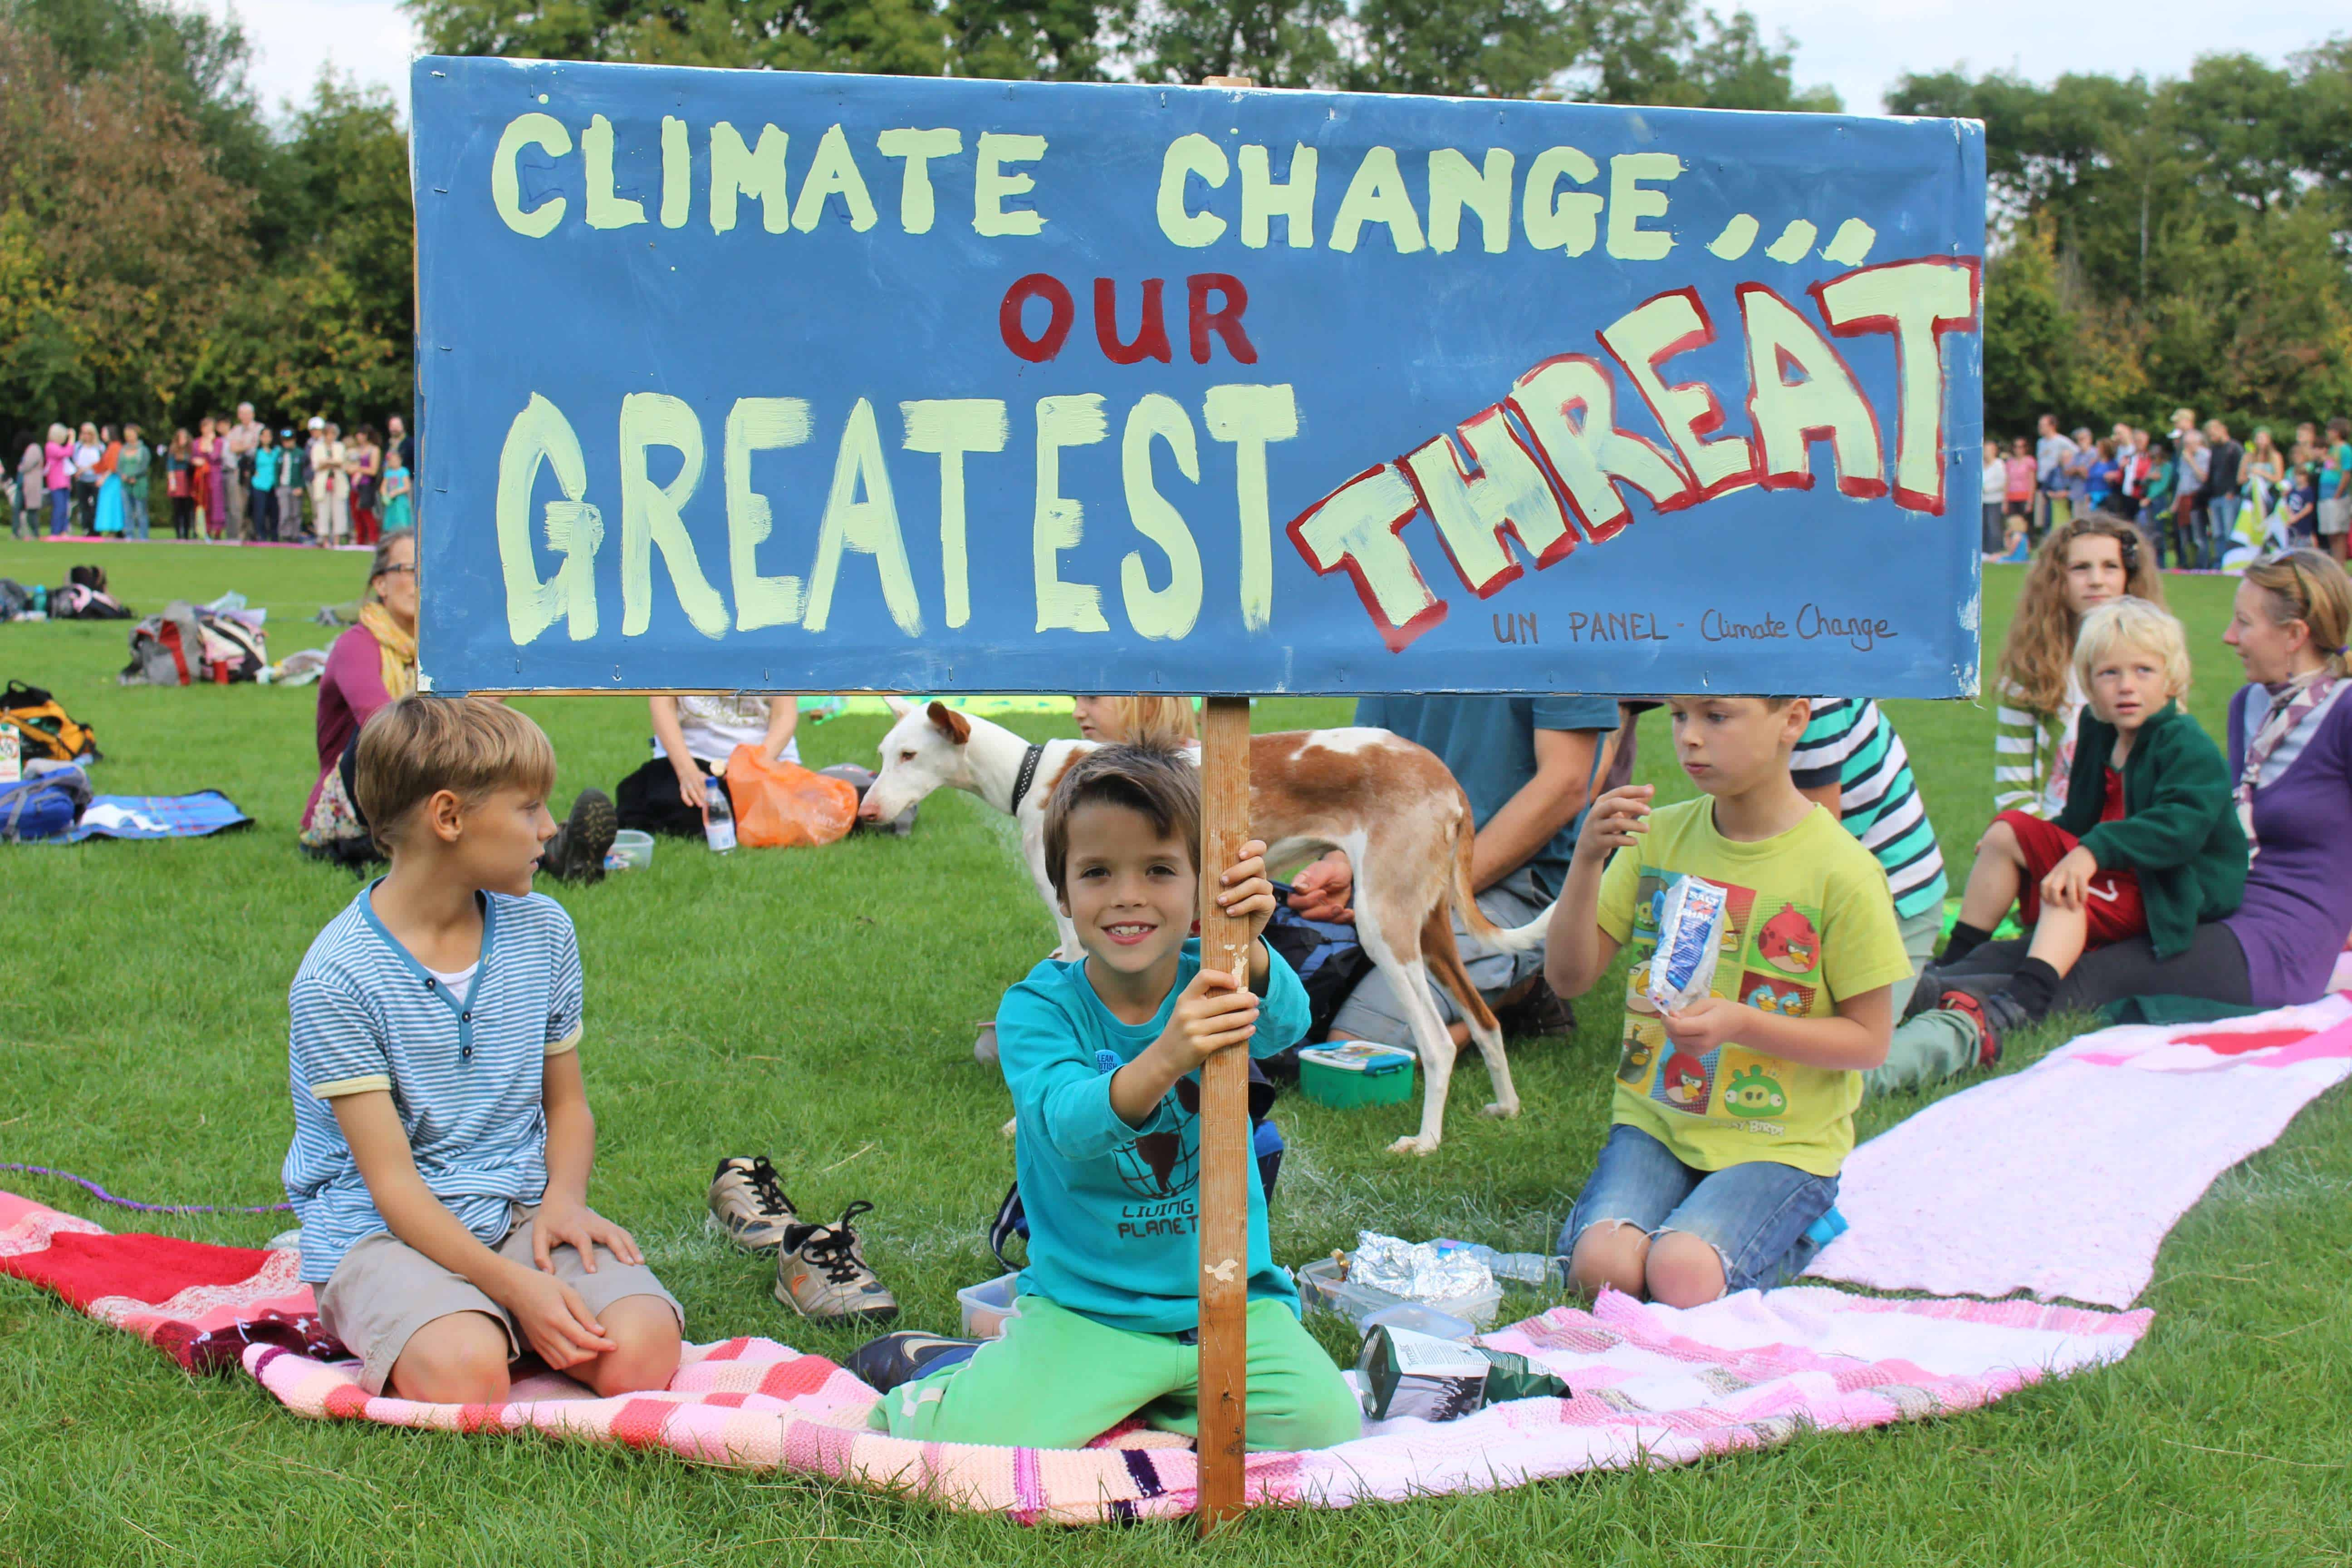 Children at climate change lobby